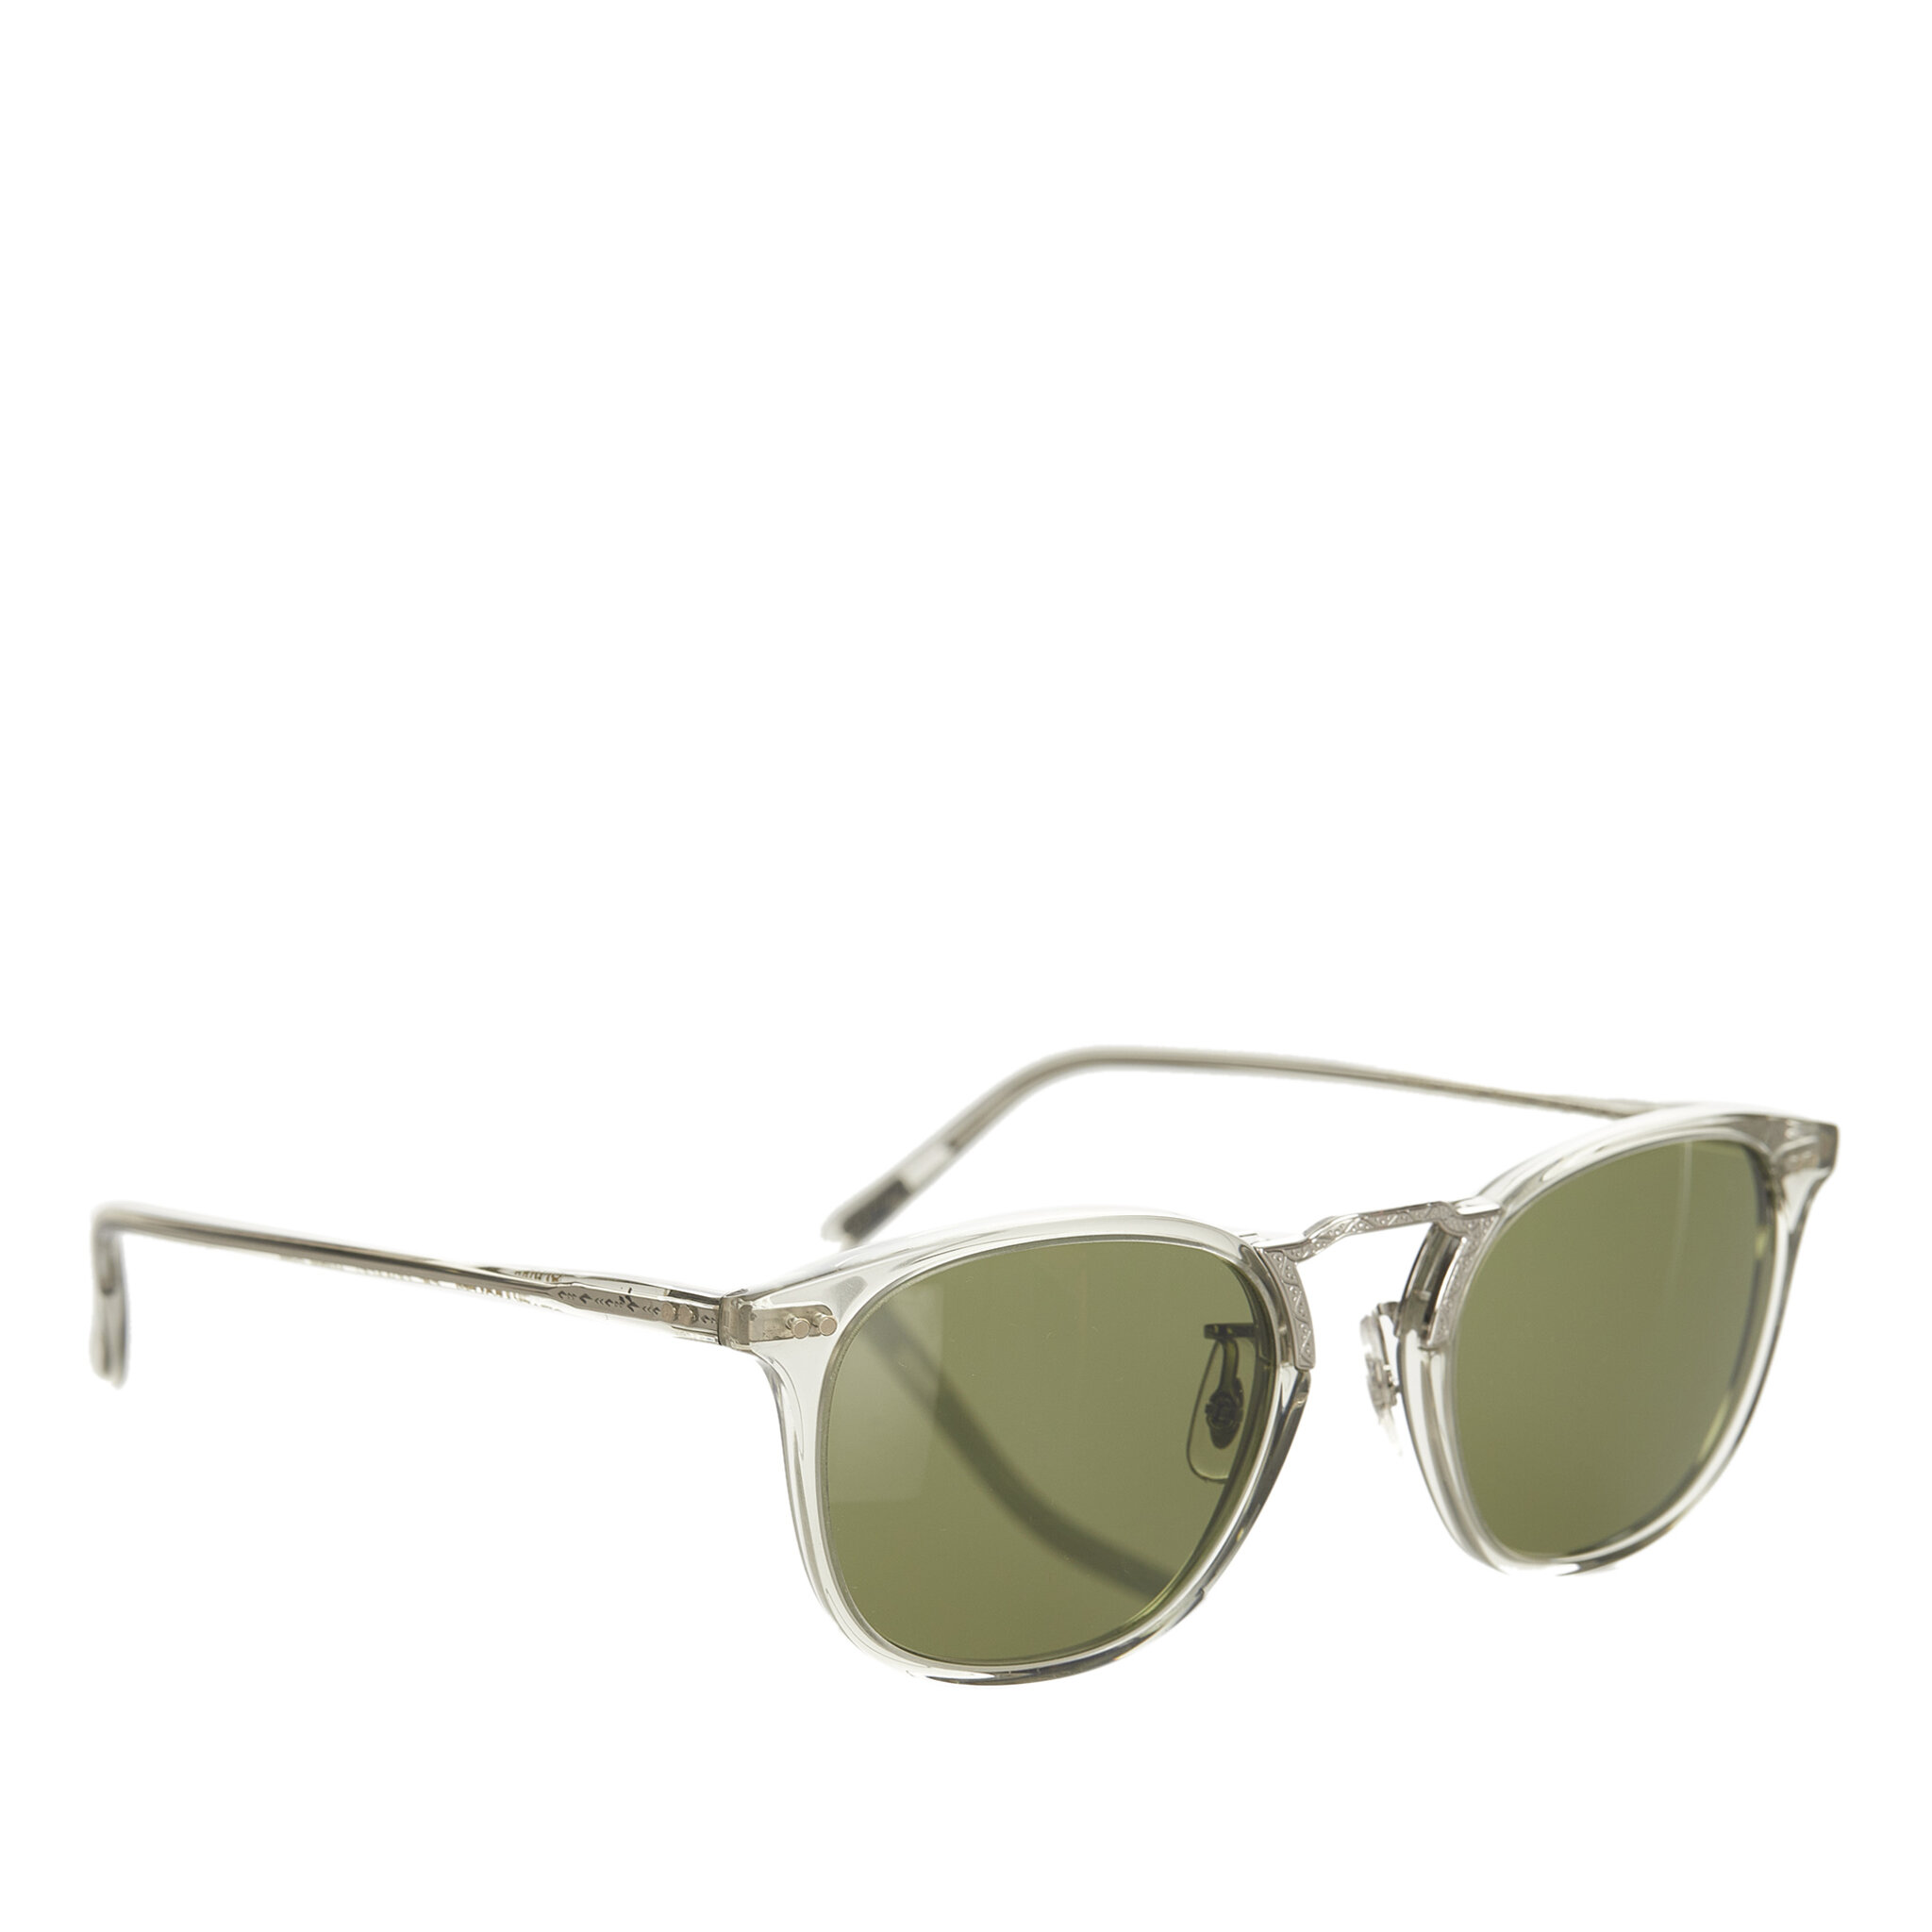 Oliver Peoples Round Tinted Sunglasses, ONESIZE